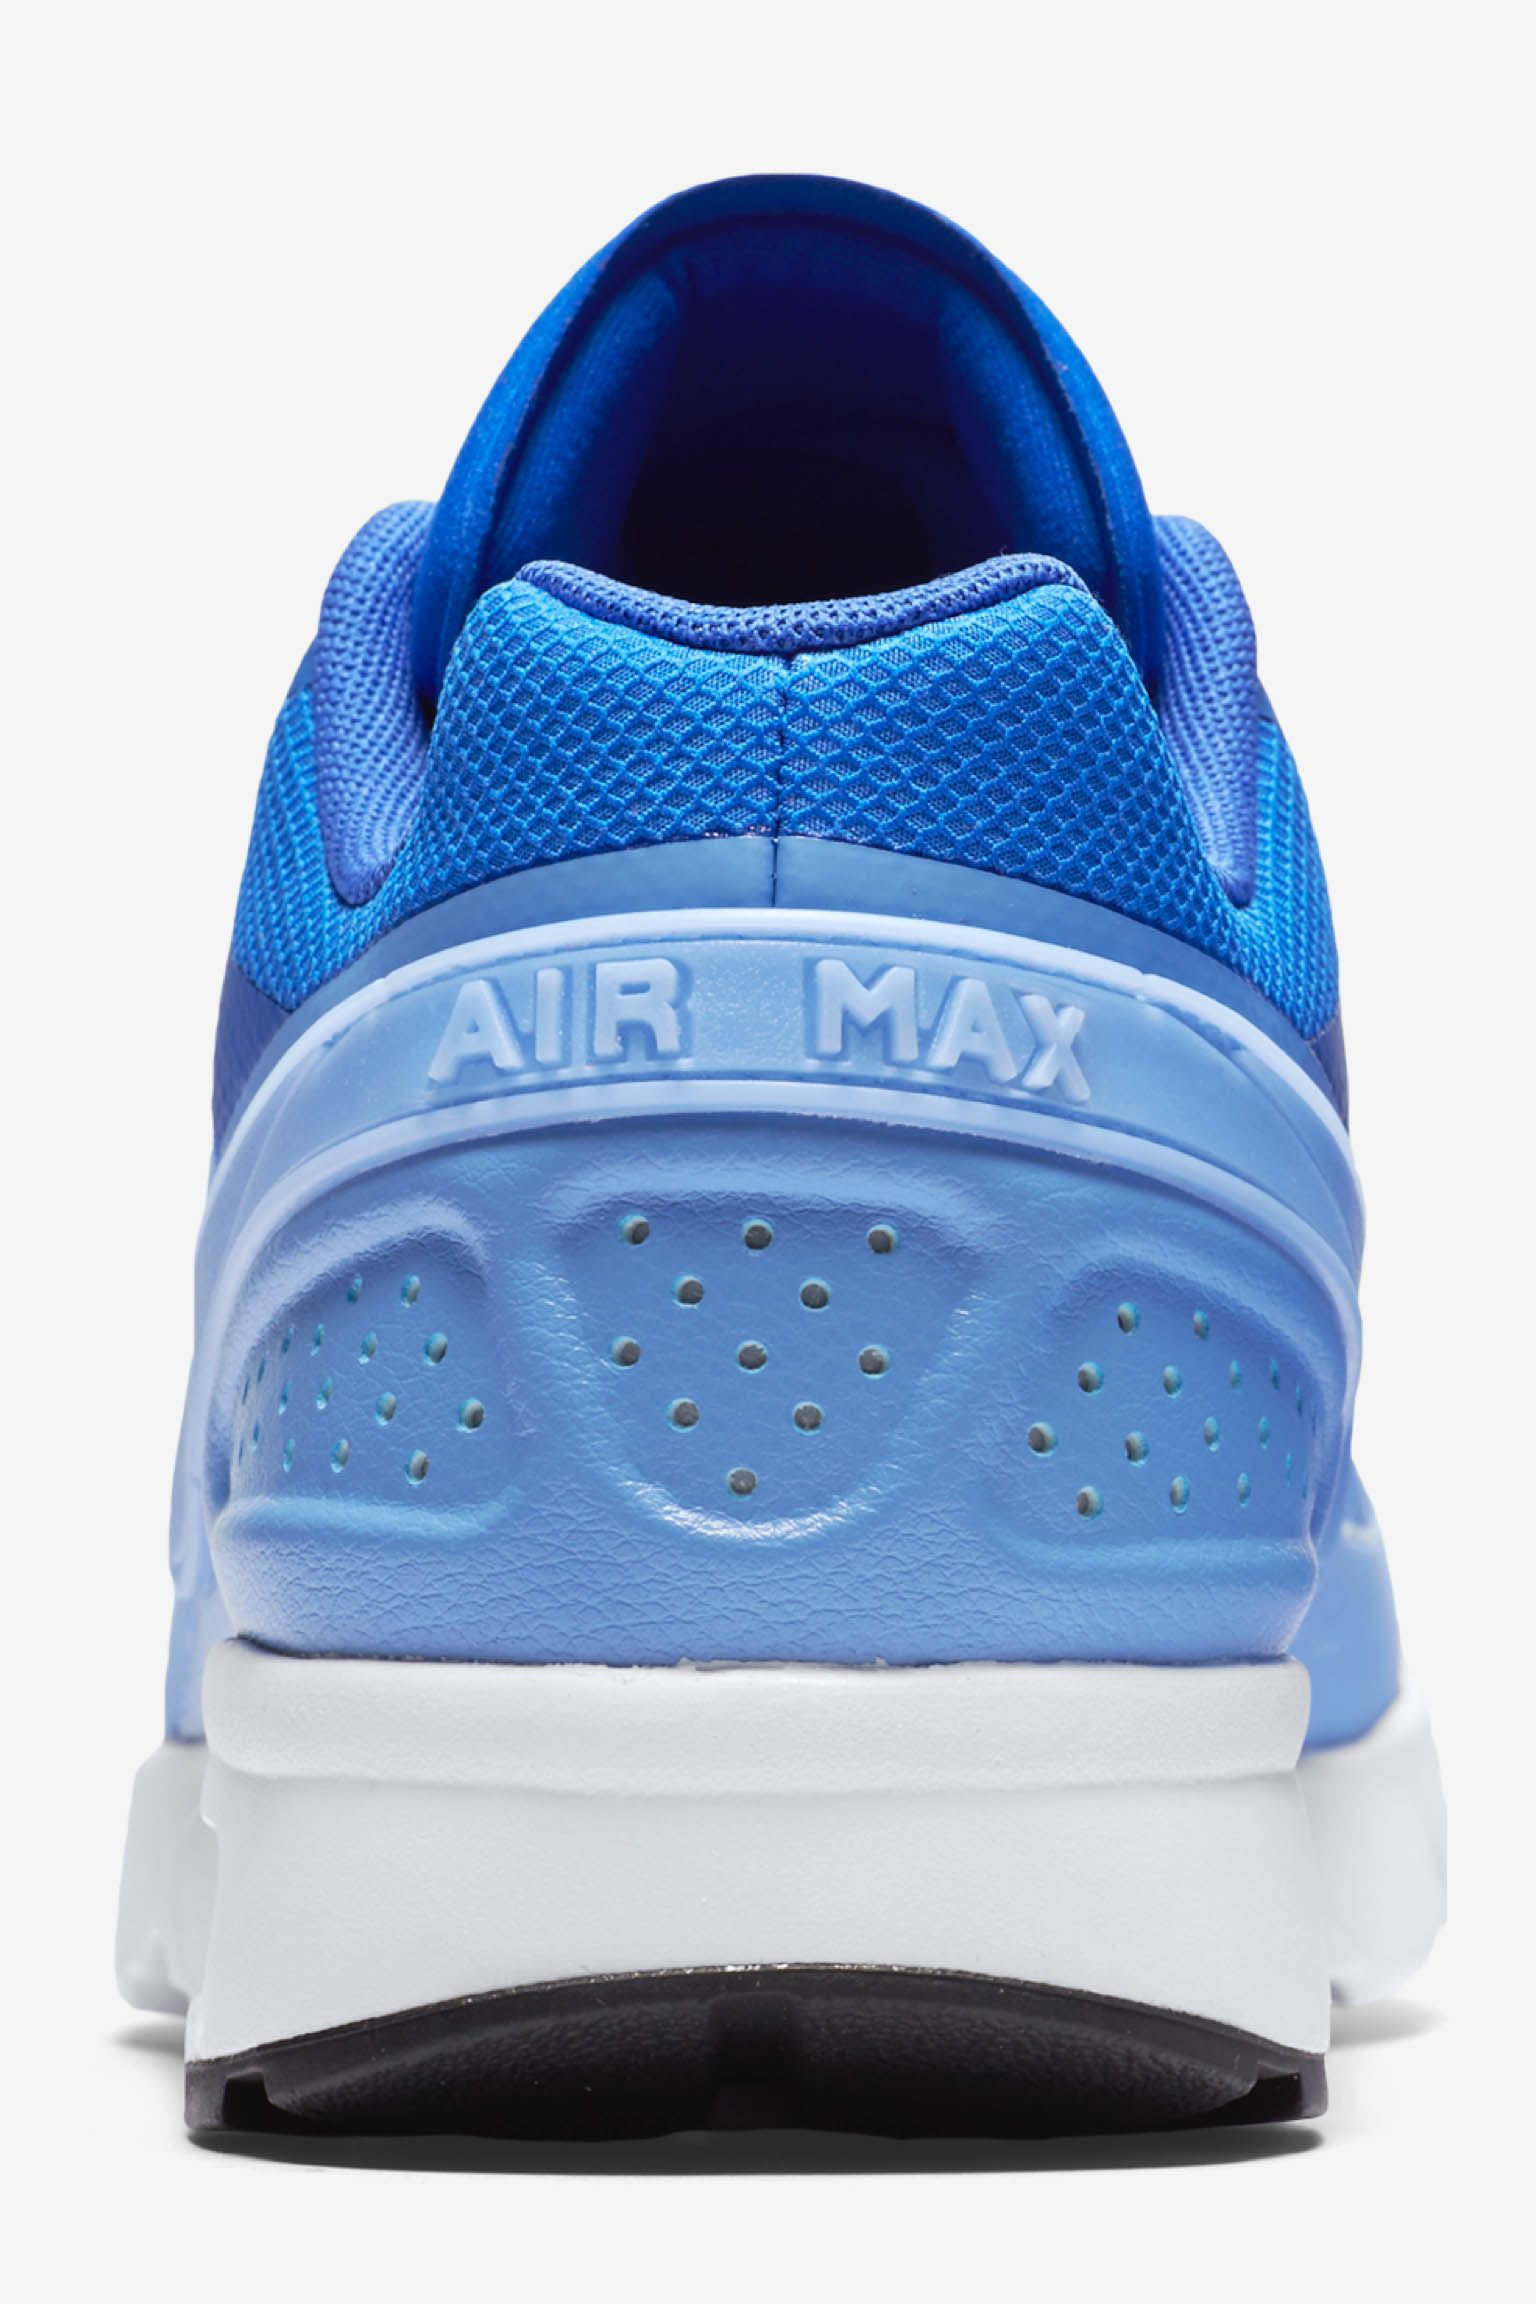 Women's Nike Air Max BW Ultra 'Royal Blue & White' Release Date